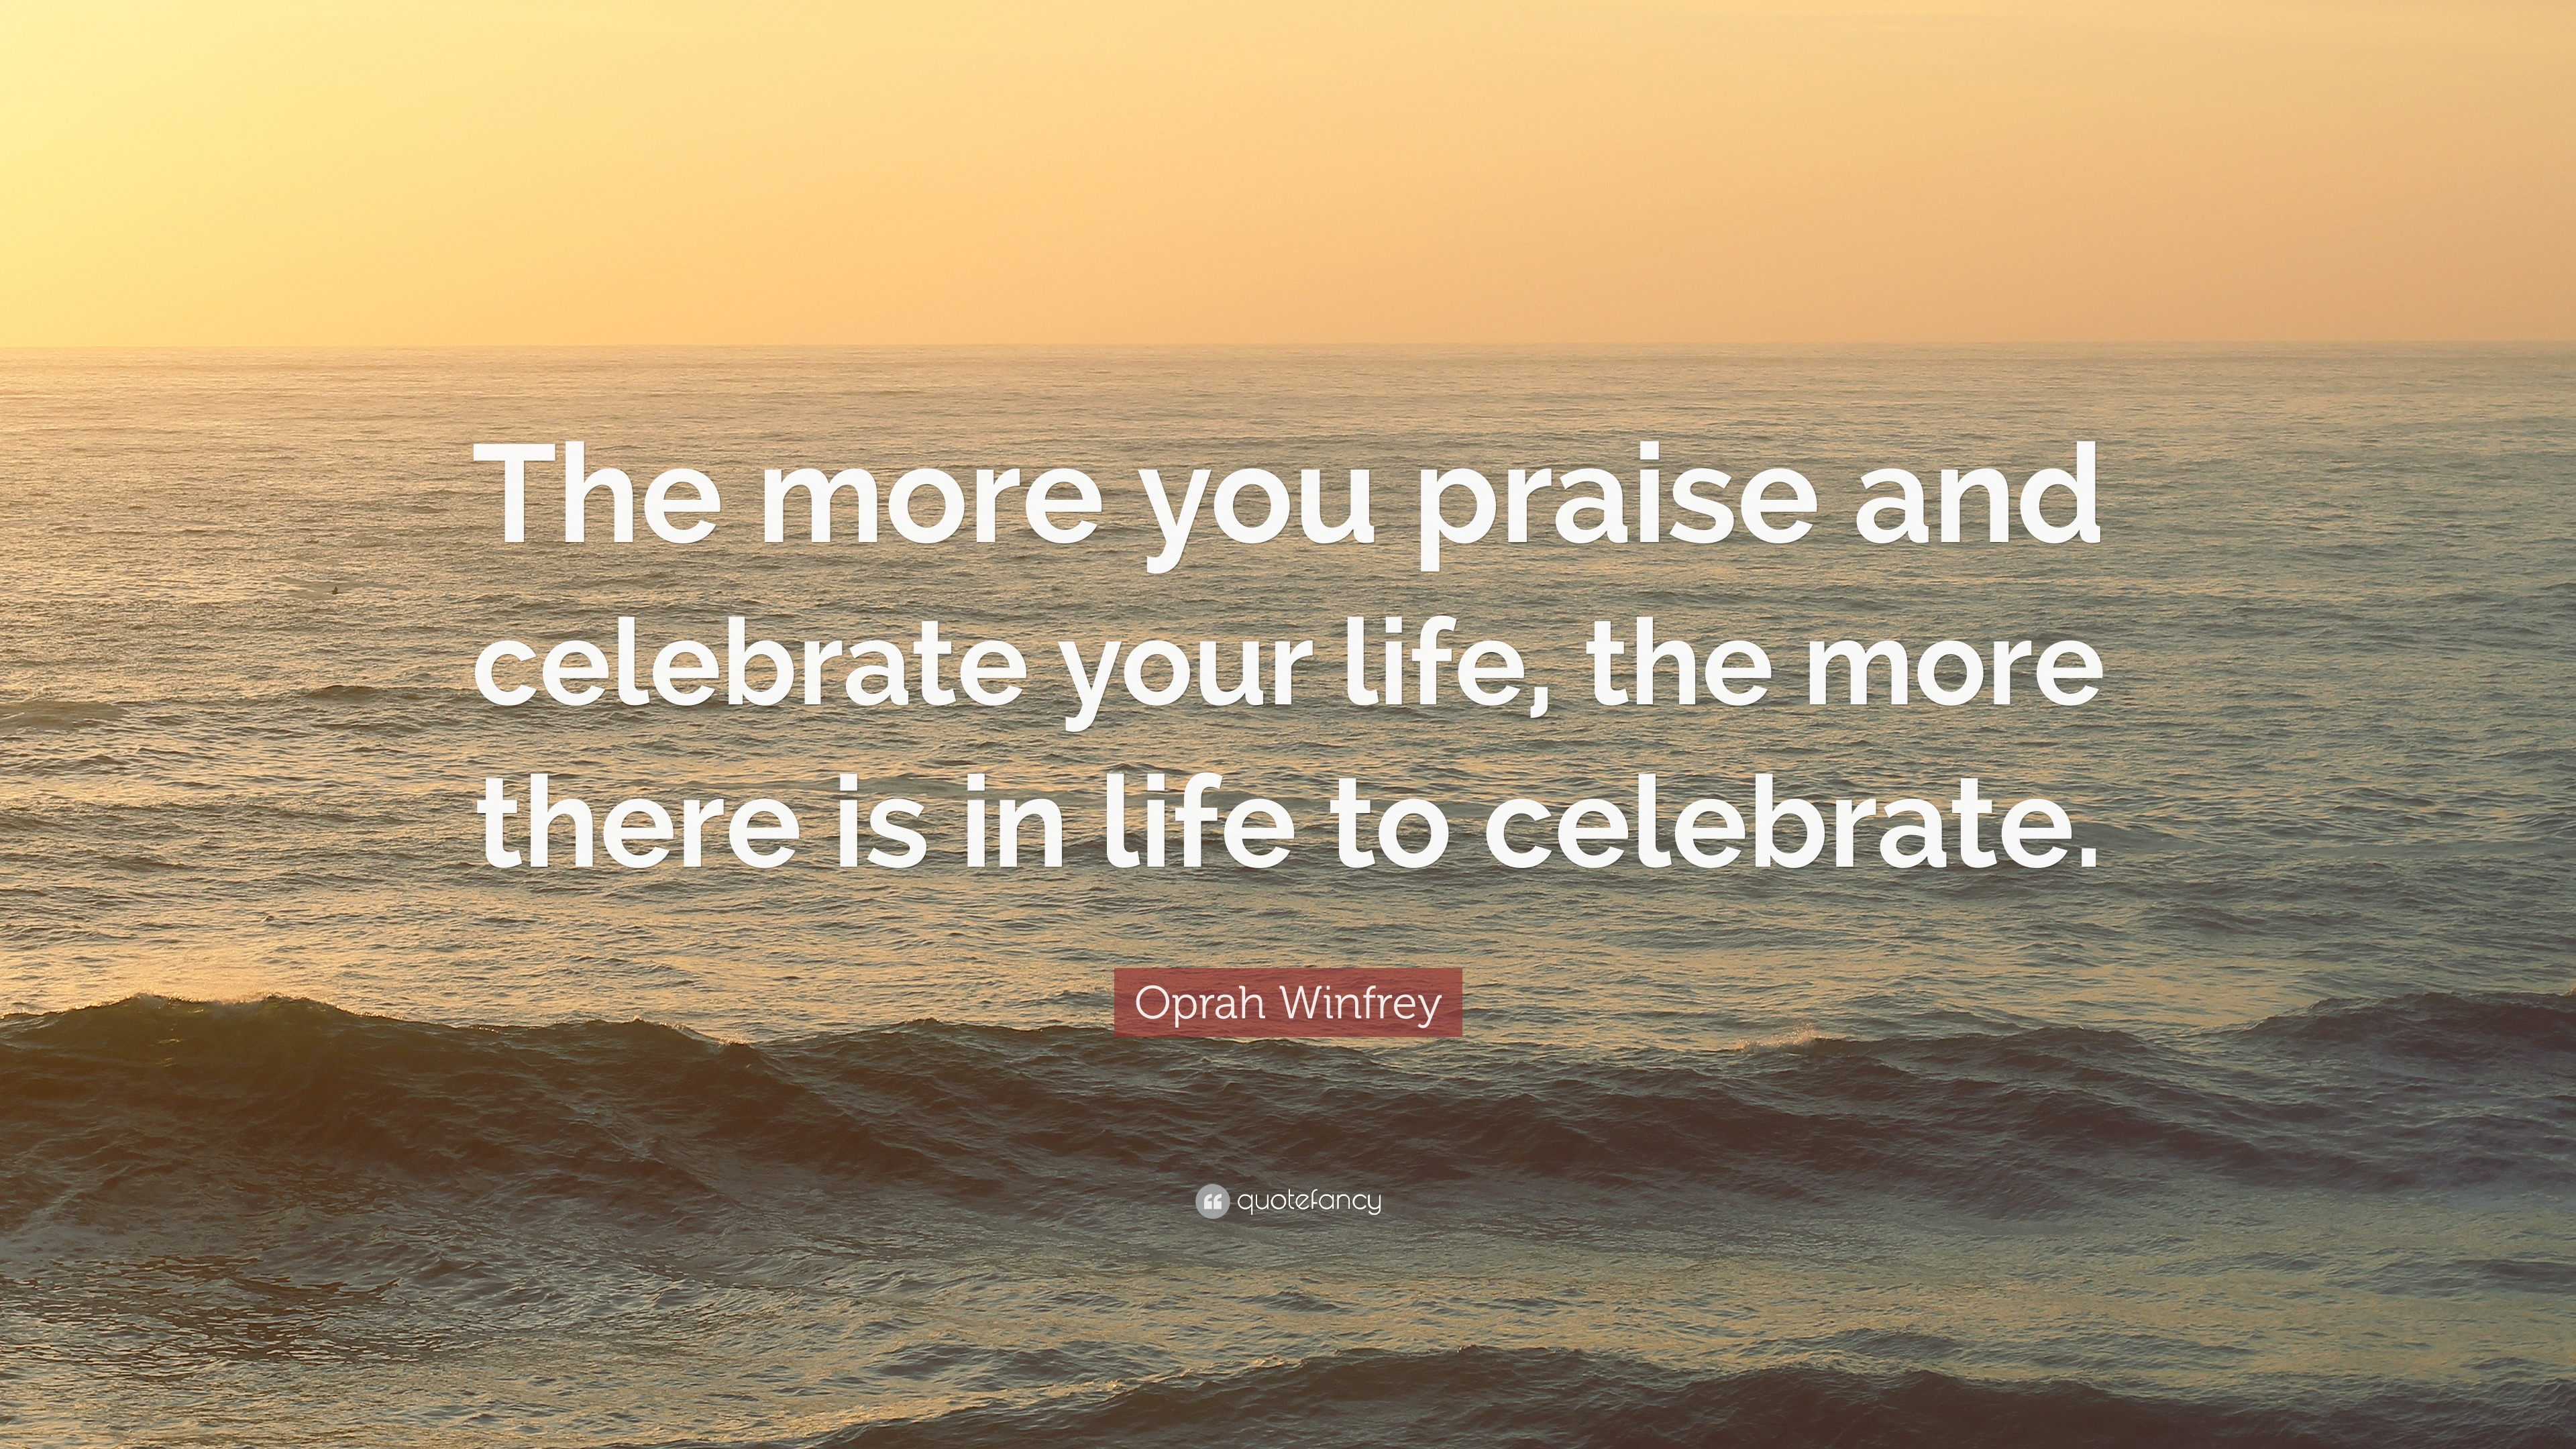 Beau Oprah Winfrey Quote: U201cThe More You Praise And Celebrate Your Life, The More